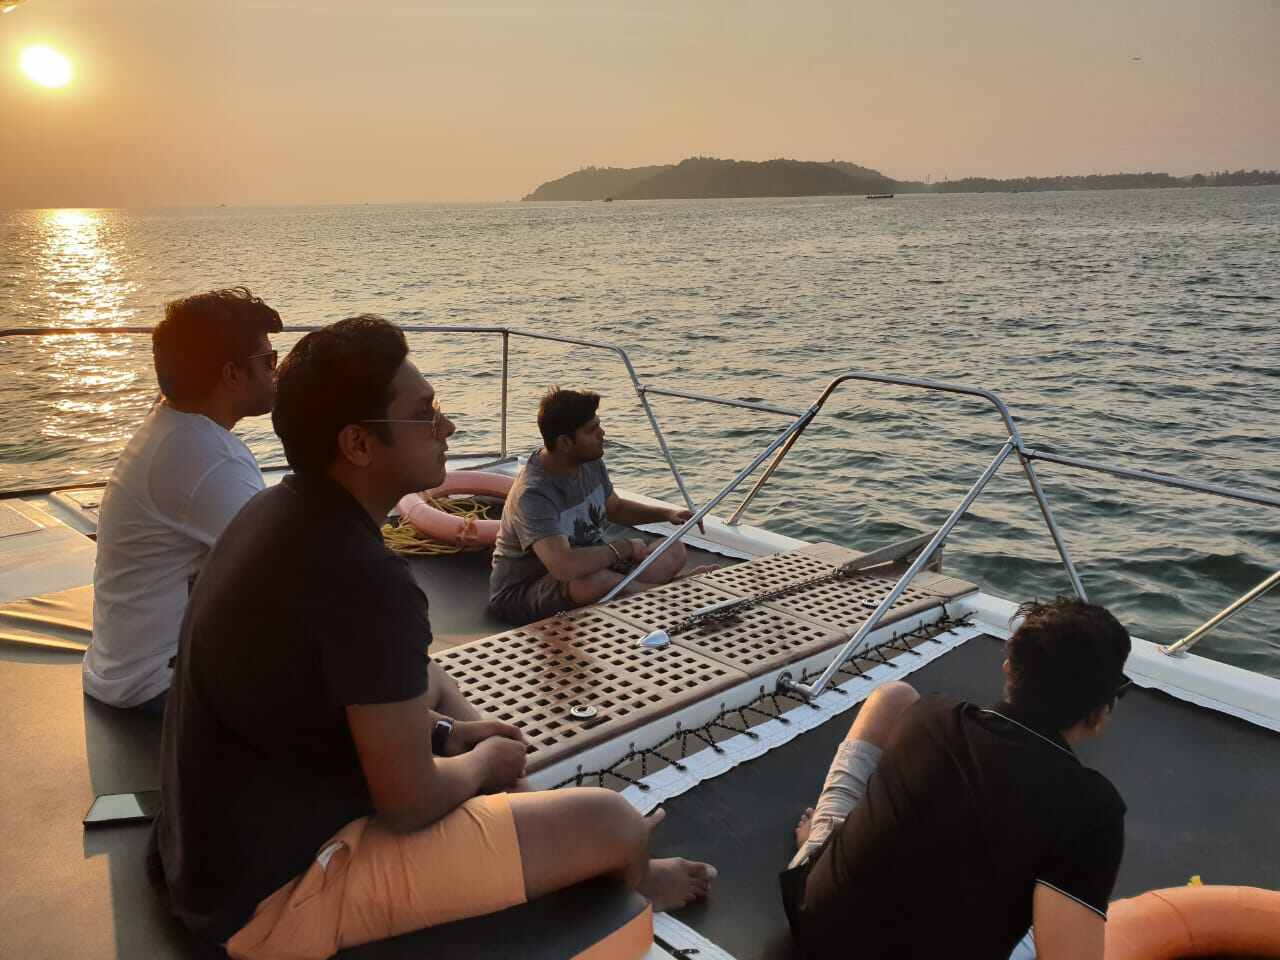 chilling with friends on catamaran